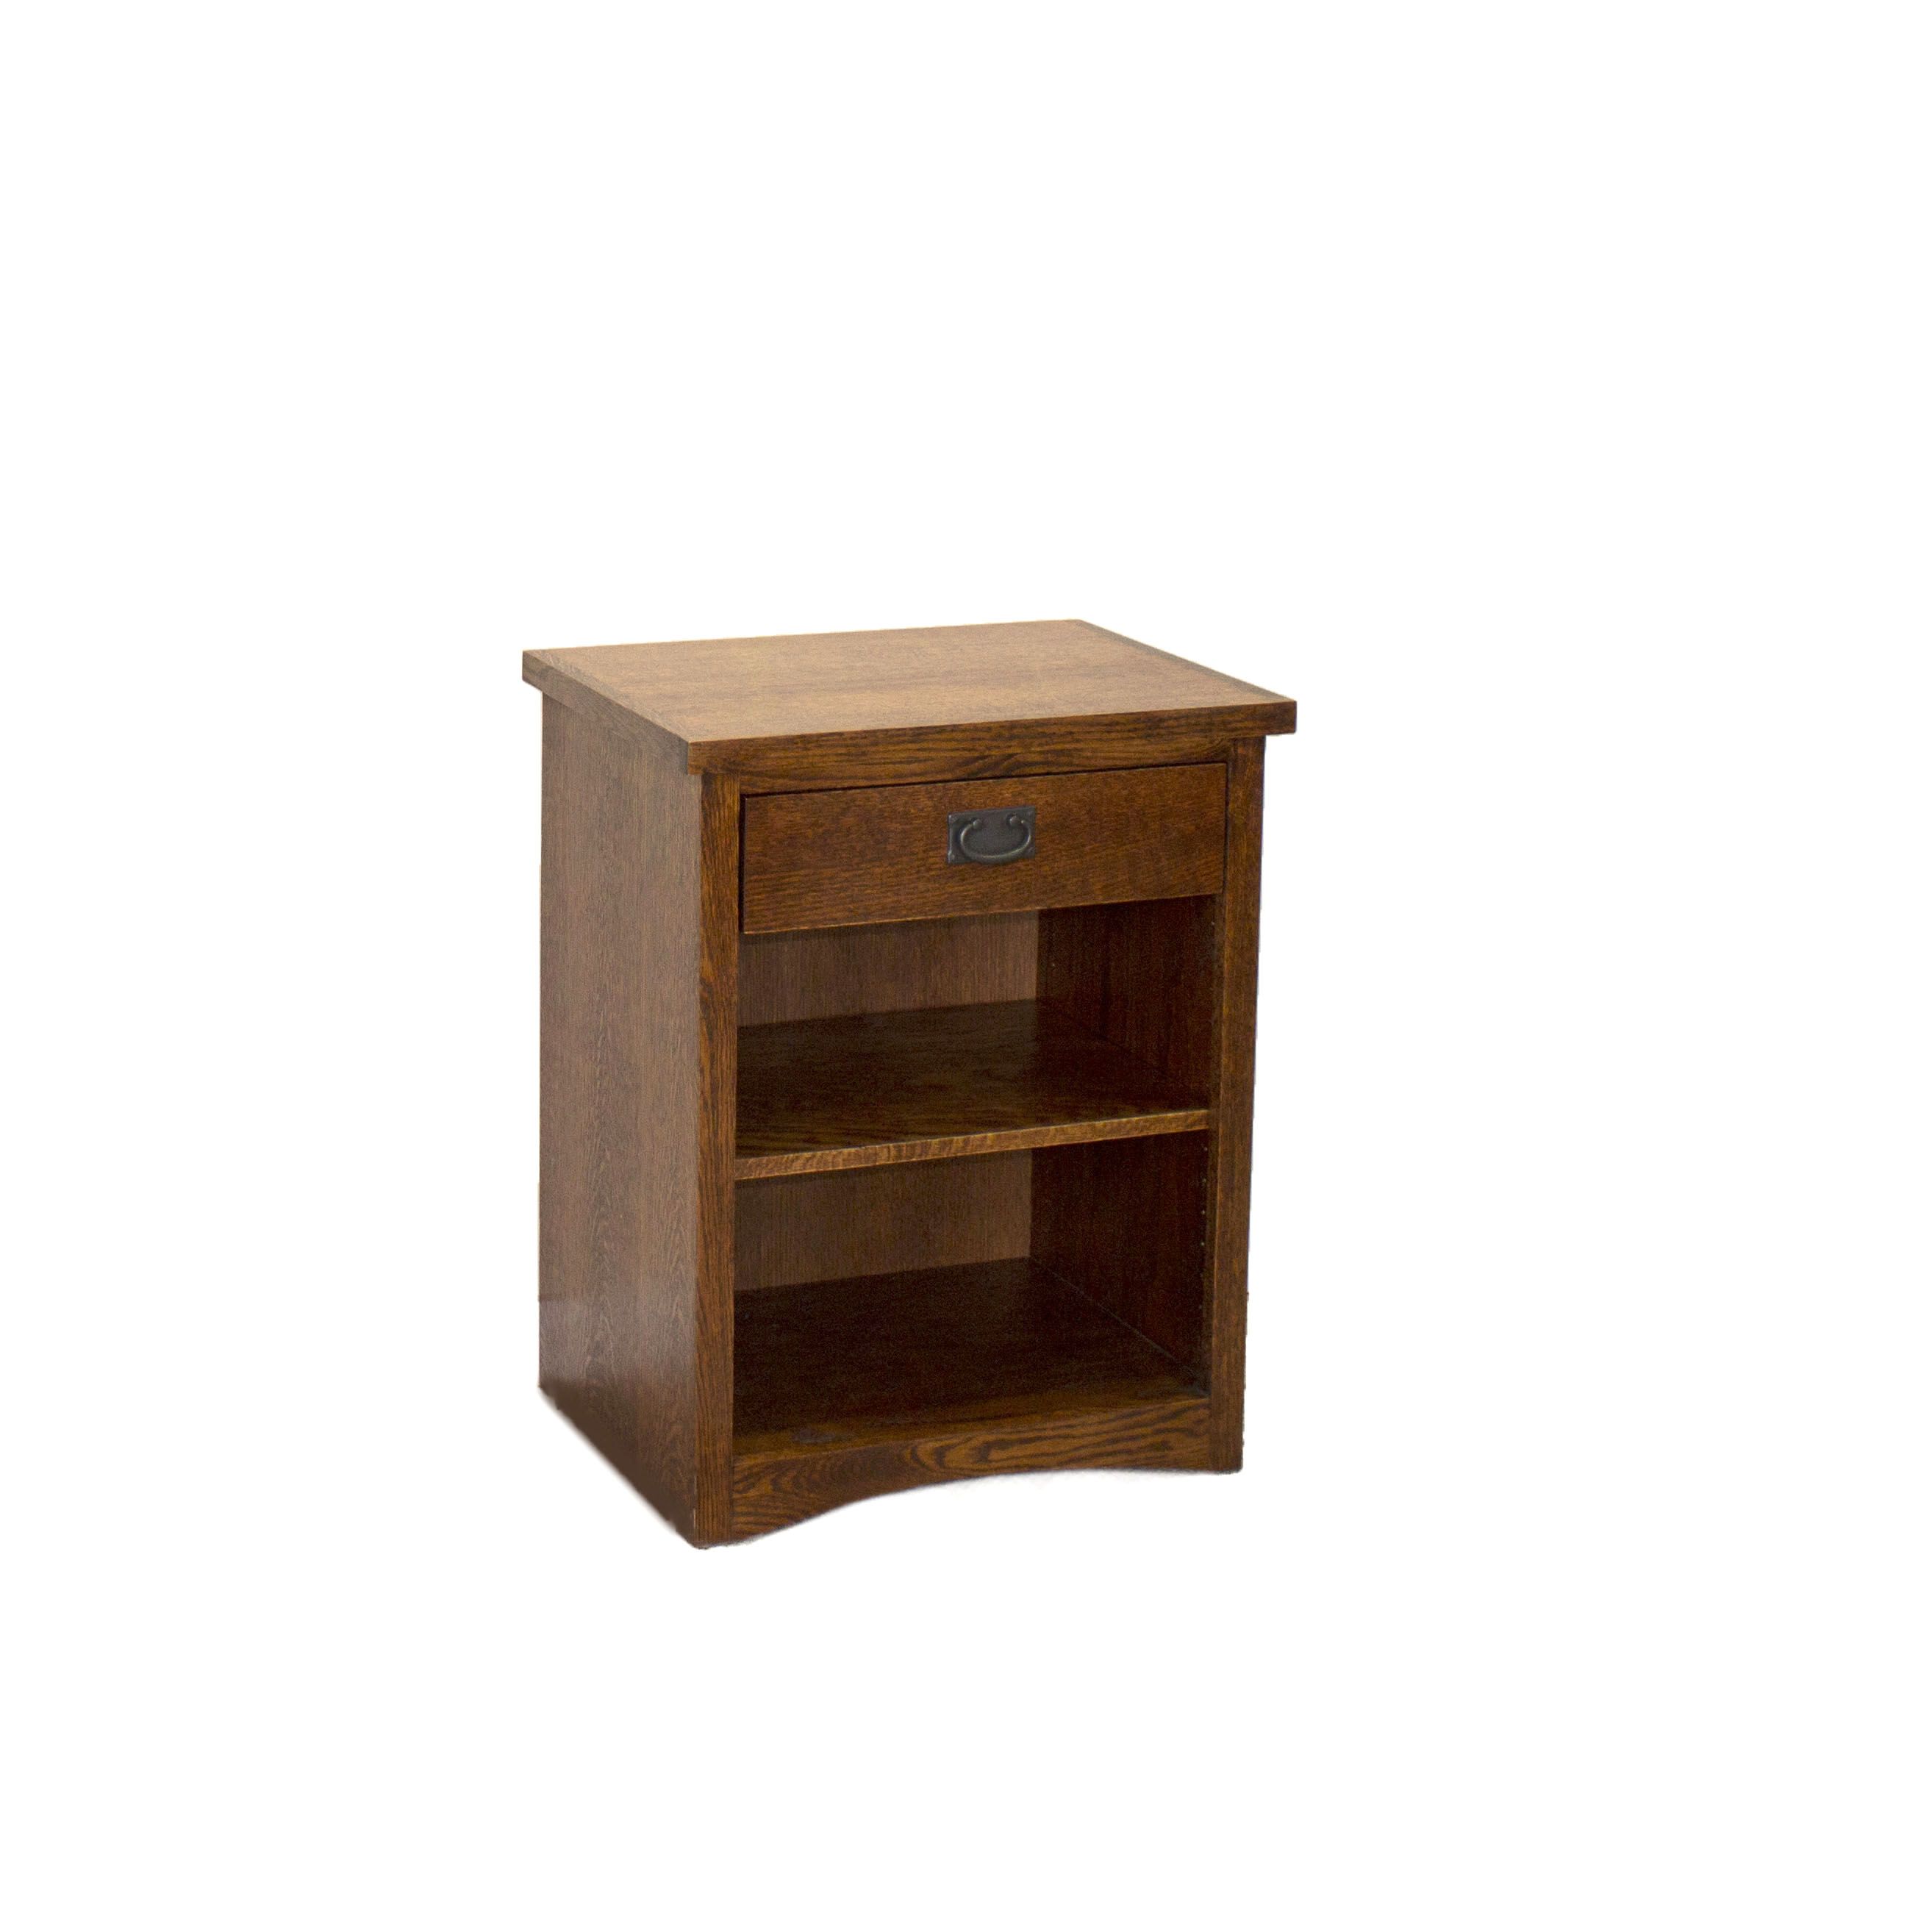 OM1615  1 Drw Nightstand w/Adj Shelf